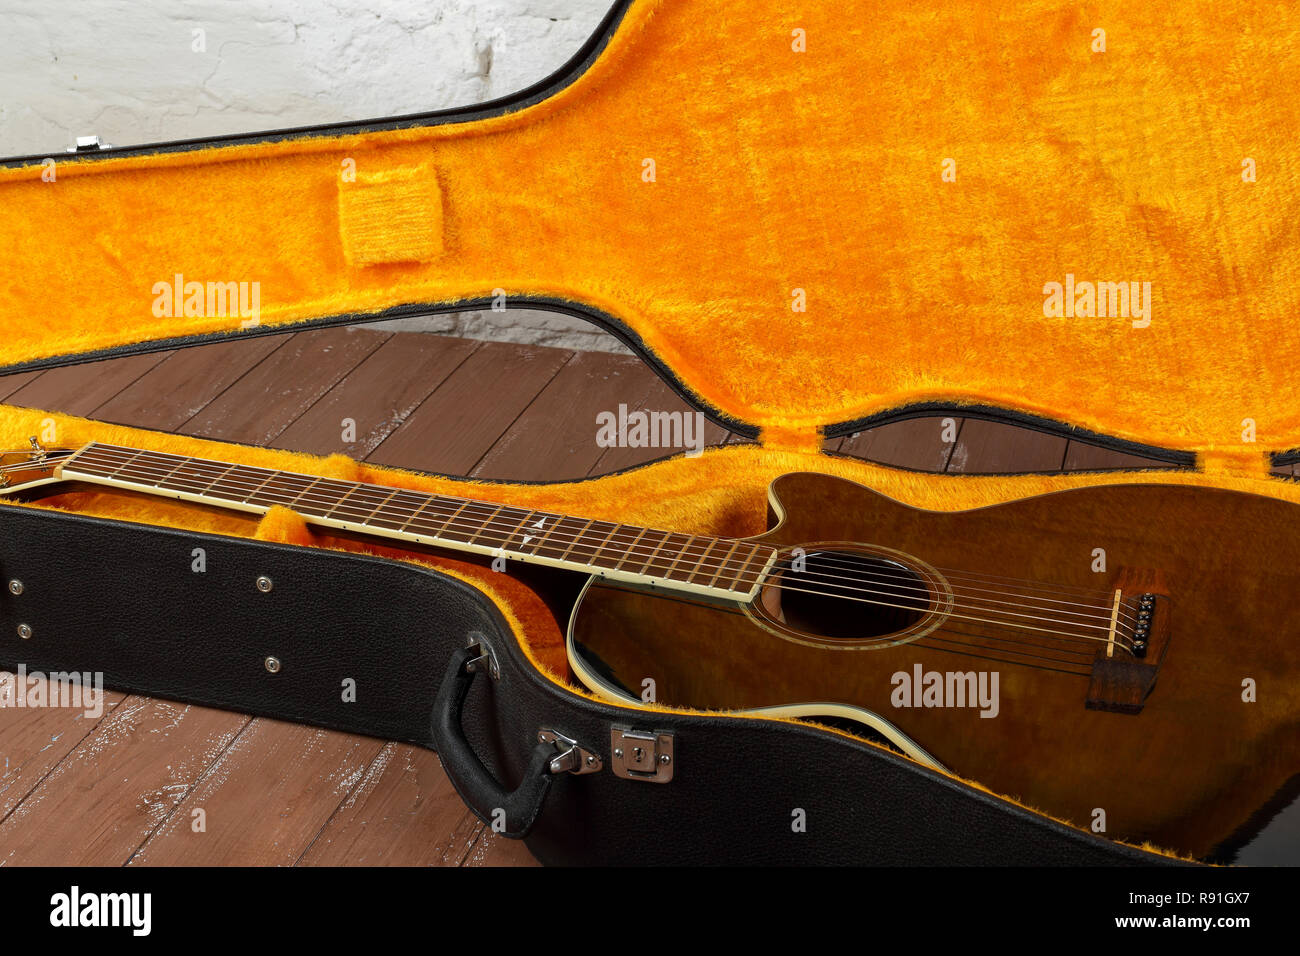 Musical instrument - Fragment brown cutaway acoustic guitar in hard case on a wood background. Stock Photo